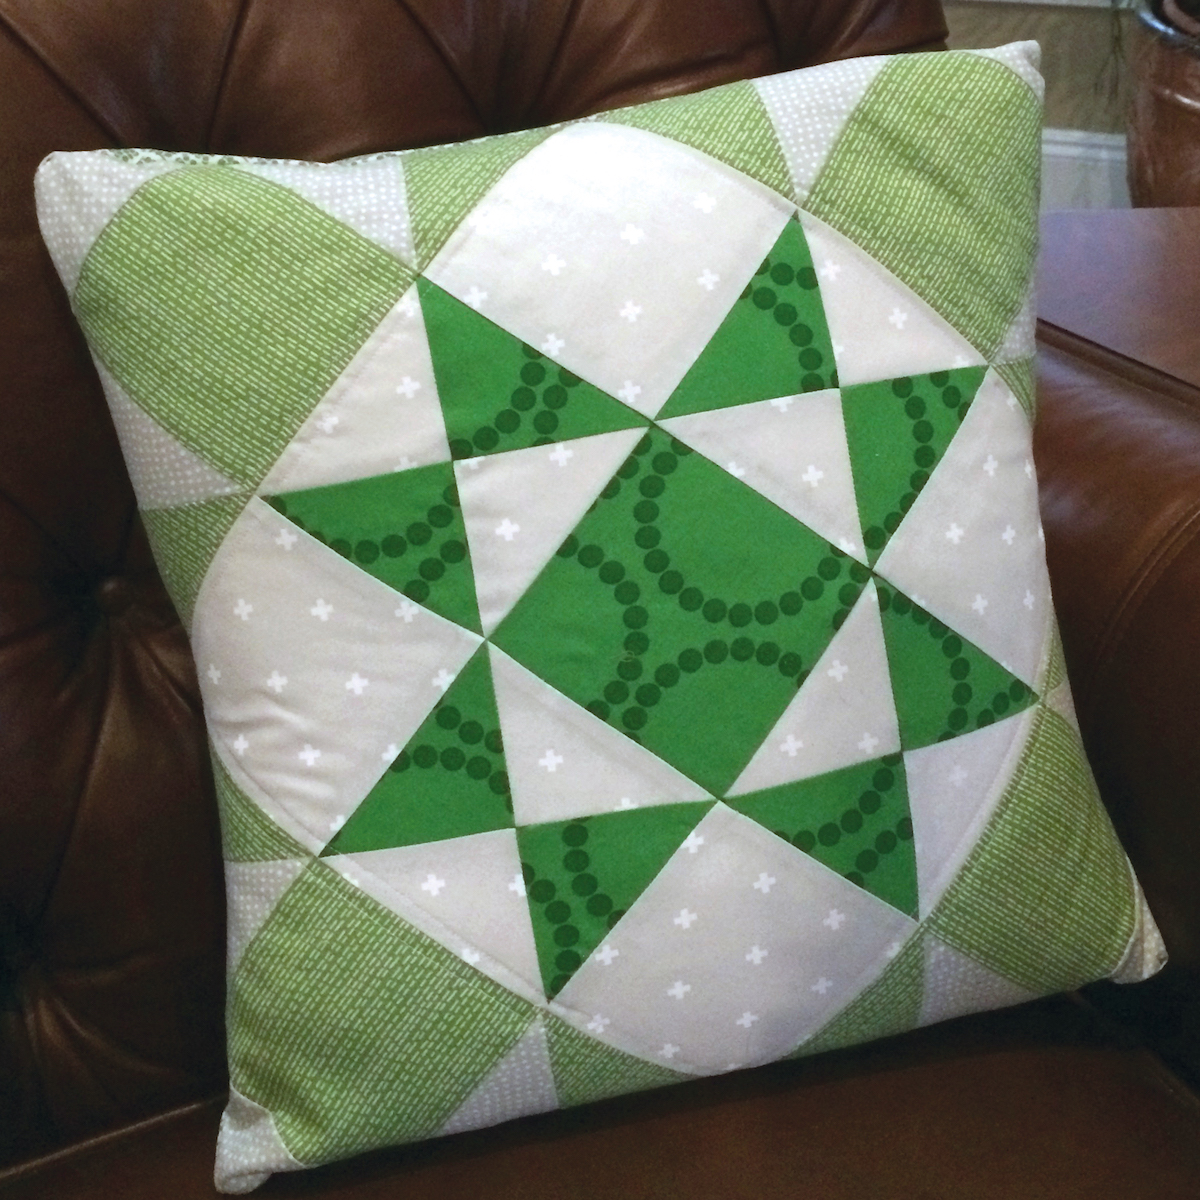 green and white Ohio star quilt block throw pillow on a leather chair